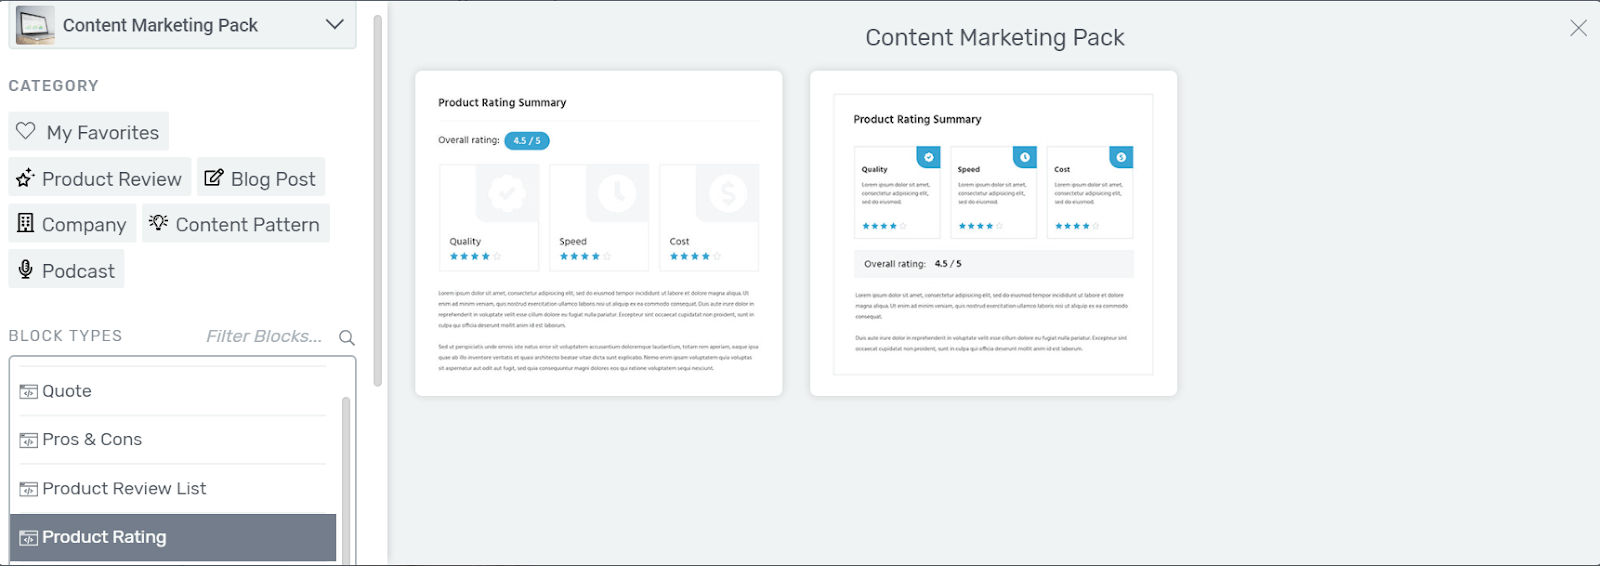 Product Rating Content Blocks